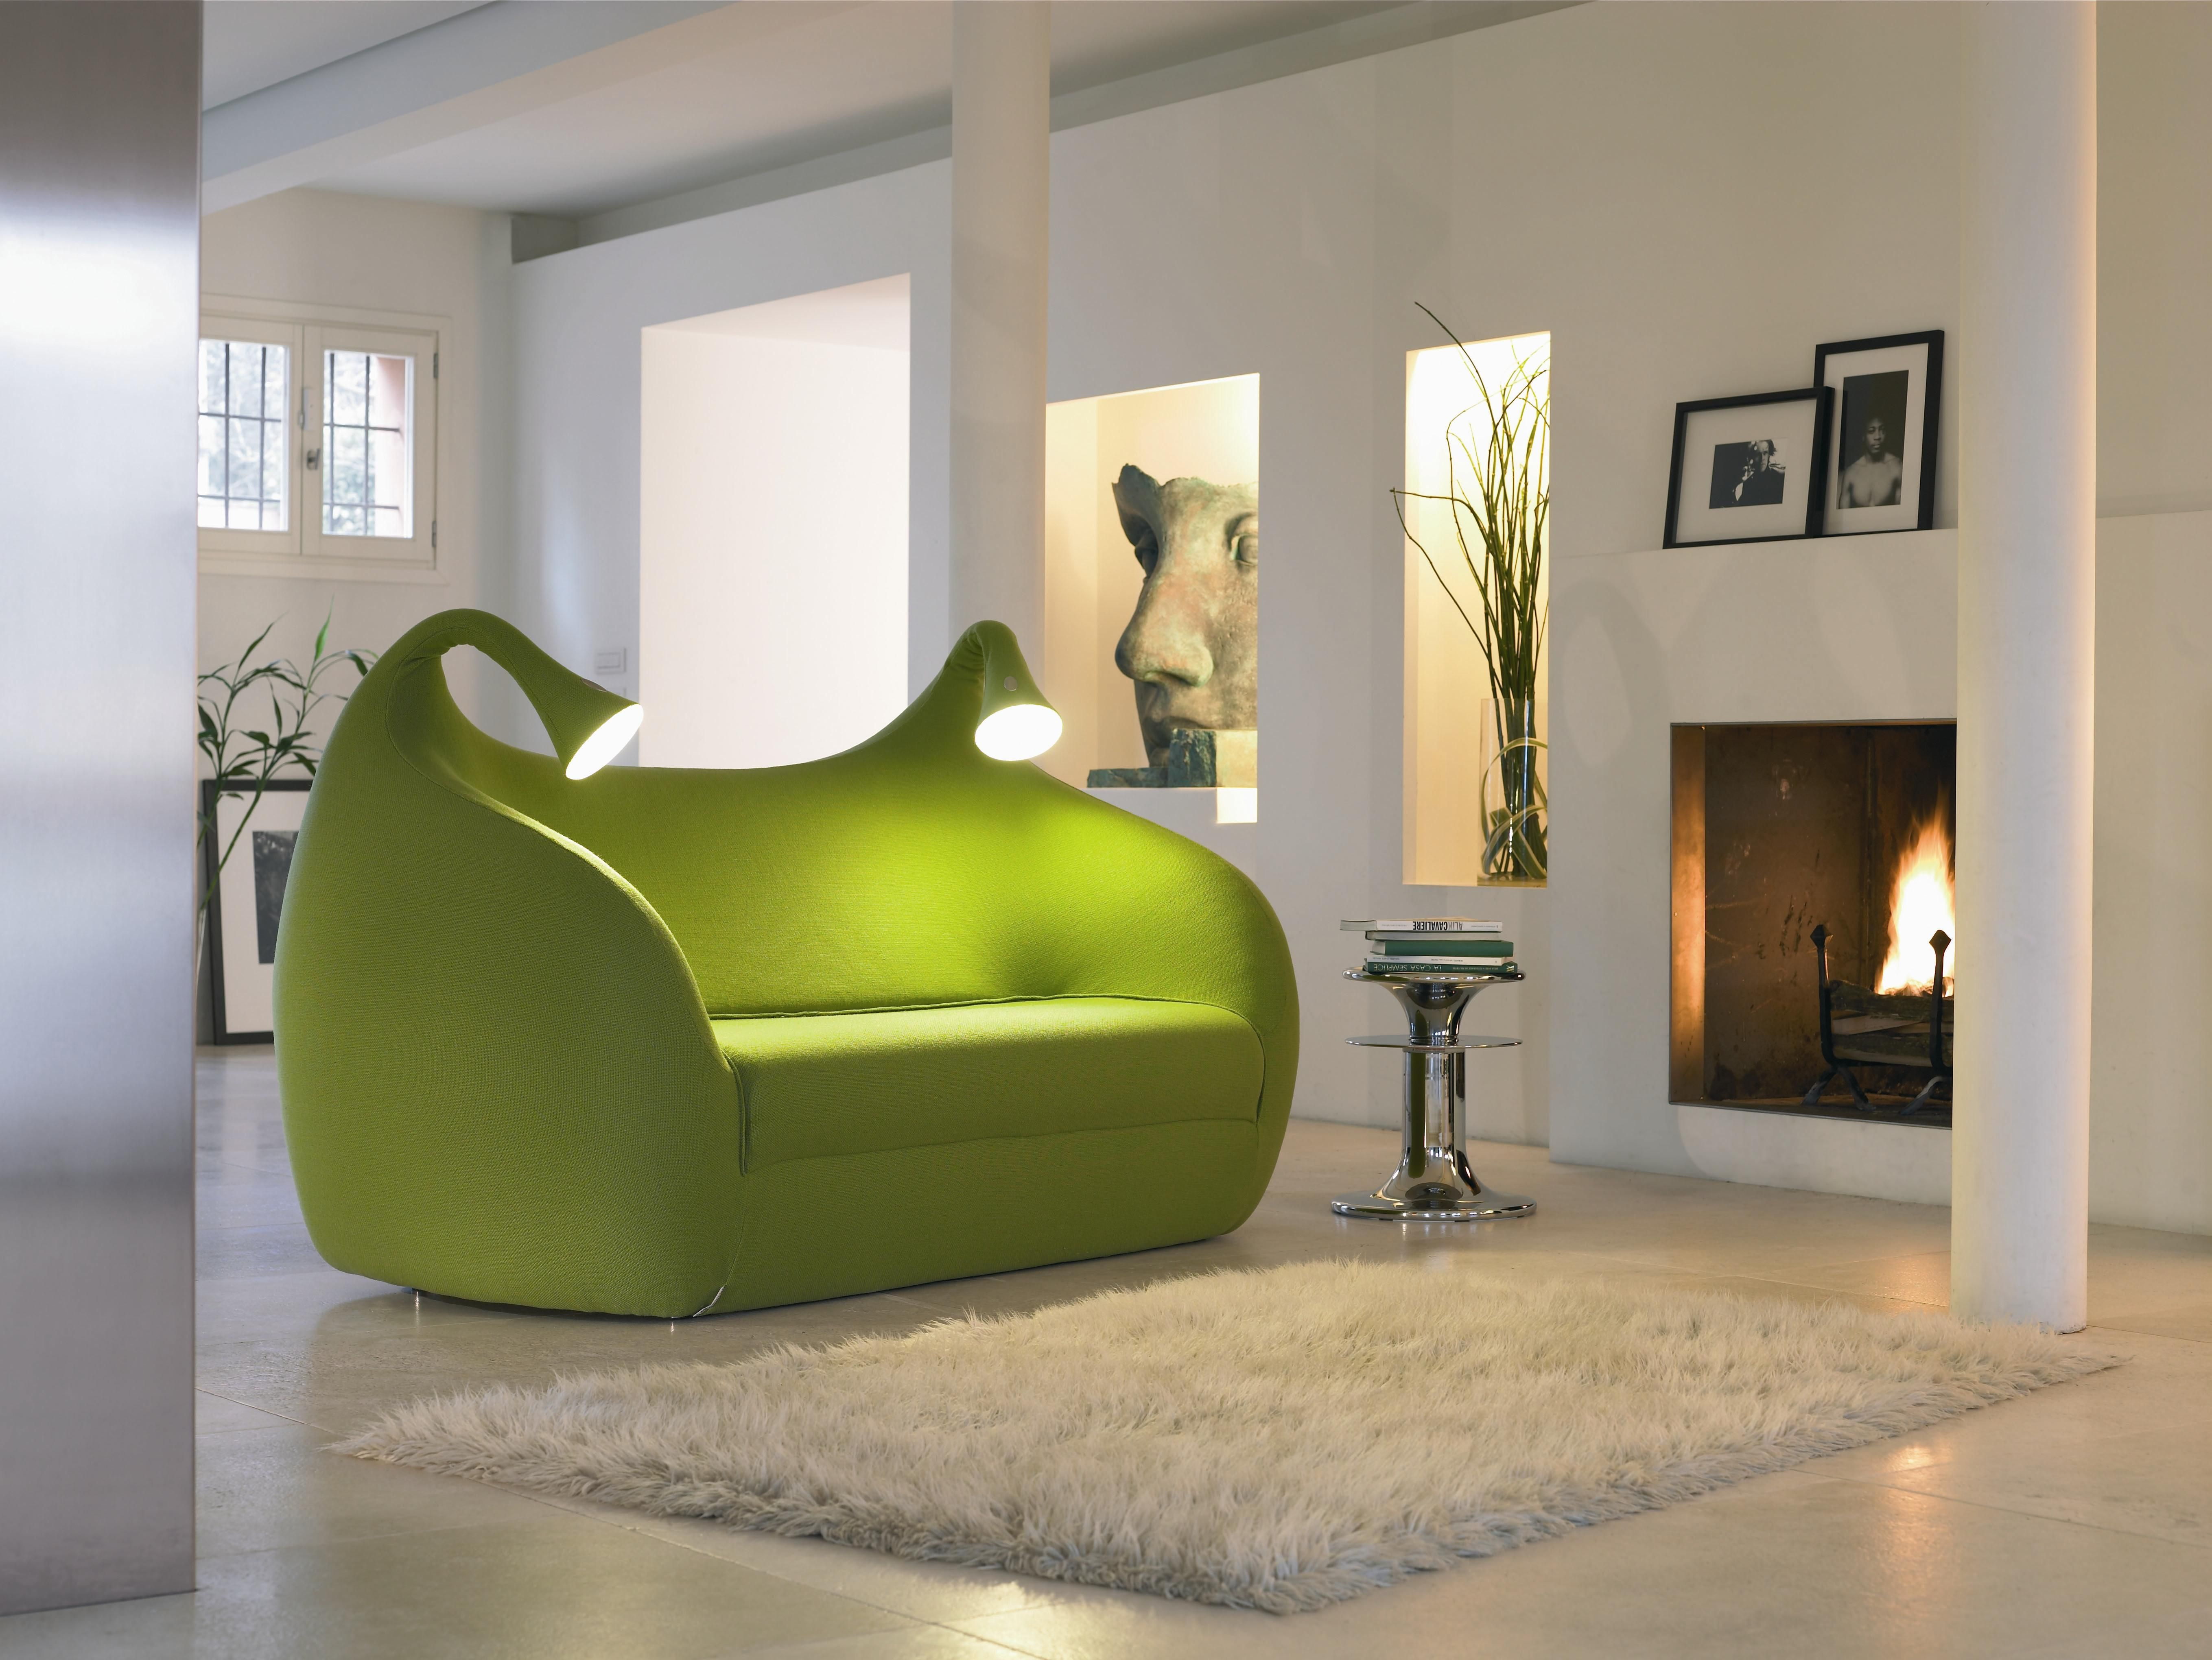 This Is A Sofa Bed! Love It! To Order Call 1.800.409.0211 Or Amazing Ideas